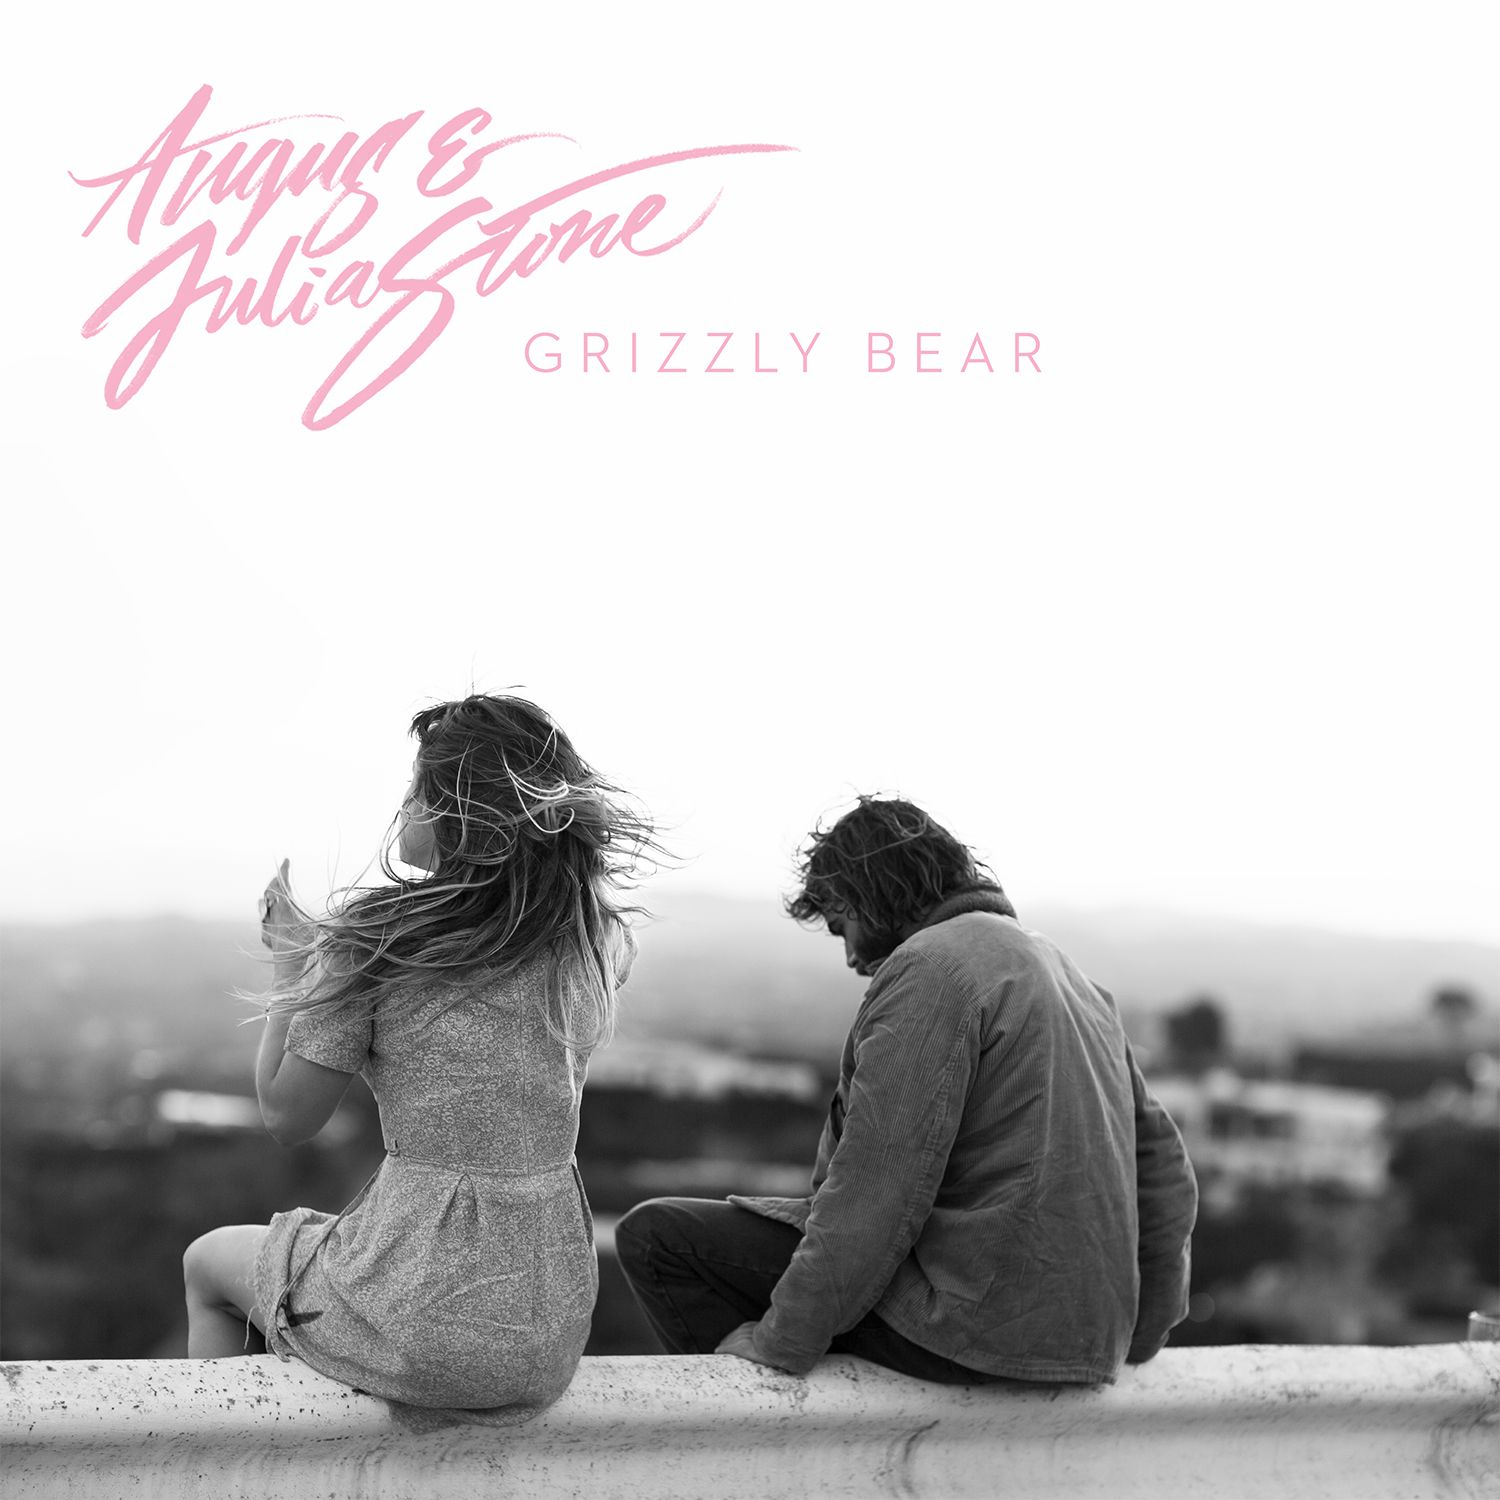 """ANGUS JULIA STONE """"Grizzly Bear"""" (Discograph 2014)"""